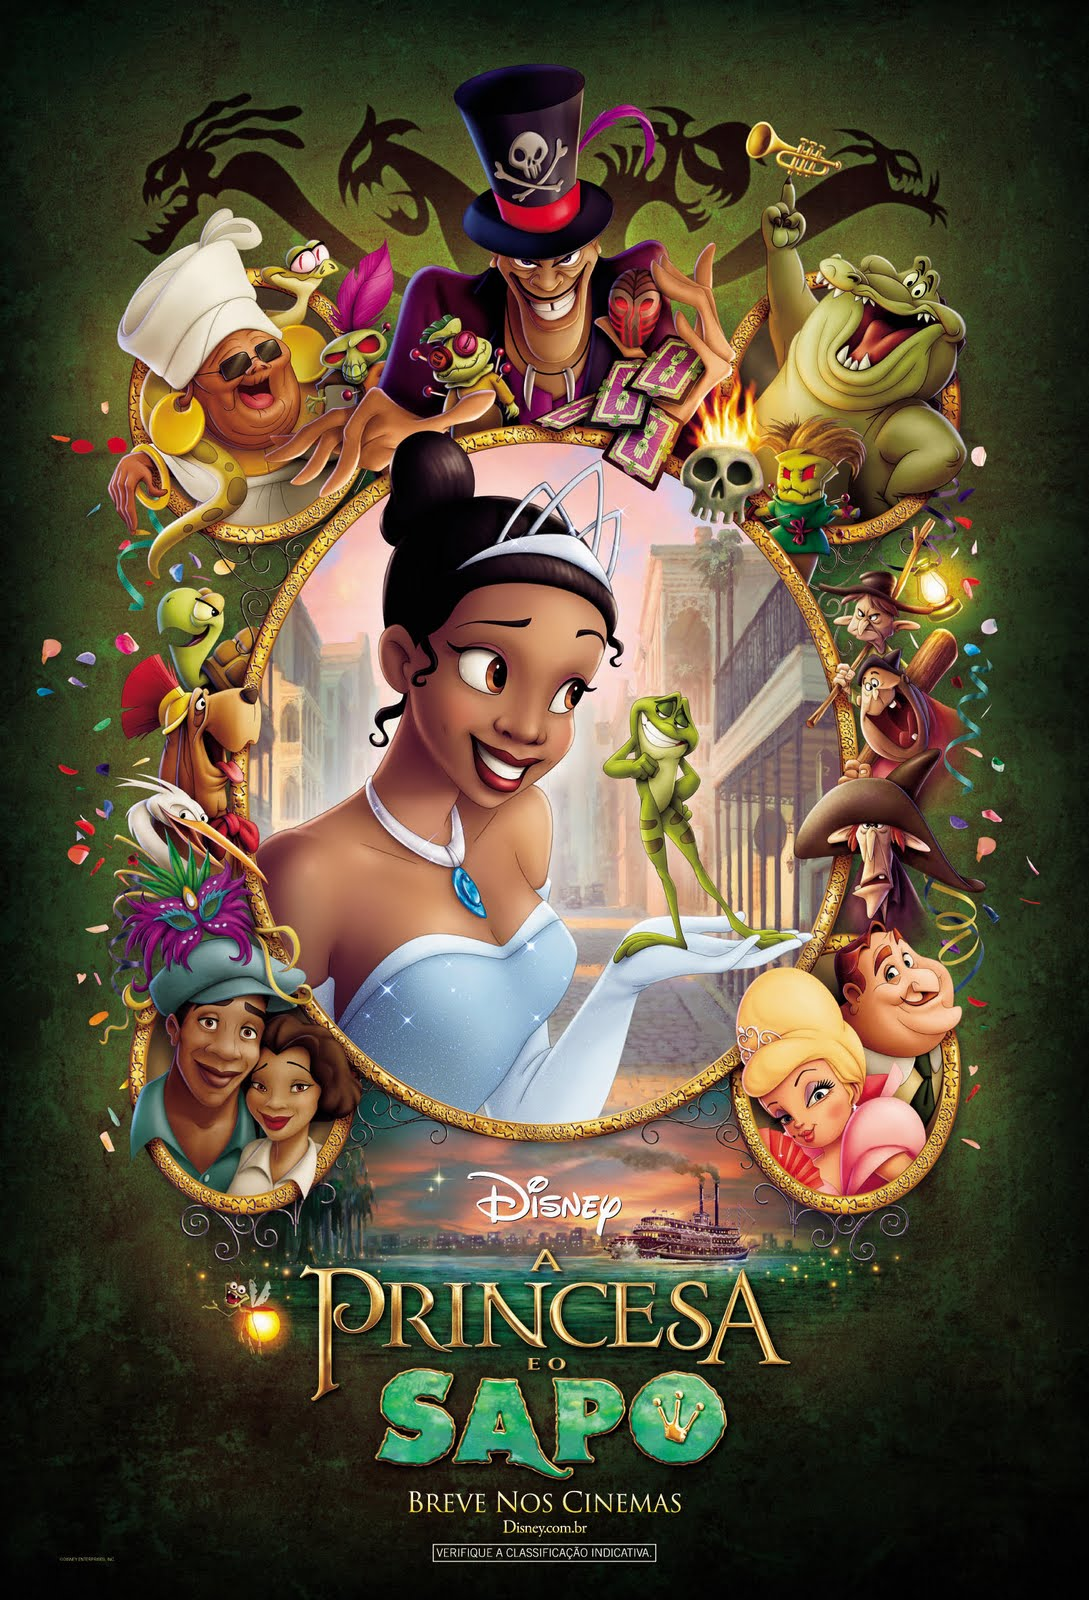 princess and frog cast. The Princess and the Frog